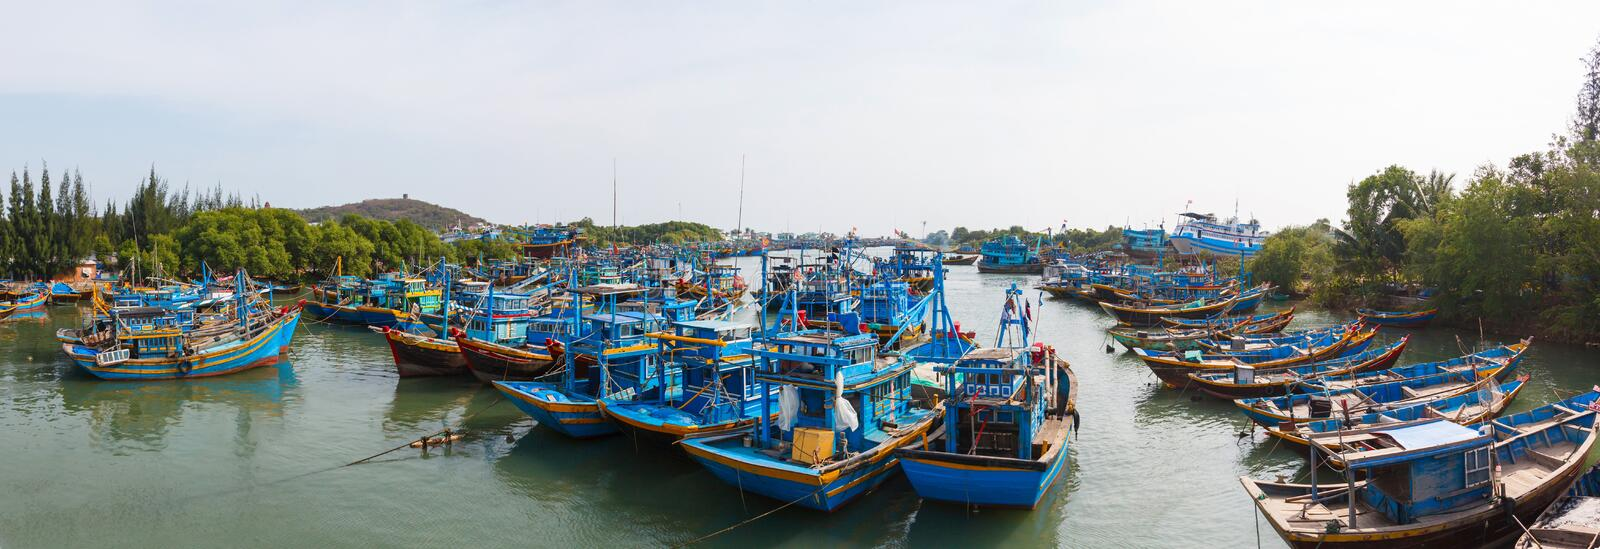 Fishing boats in Vietnam stock photography